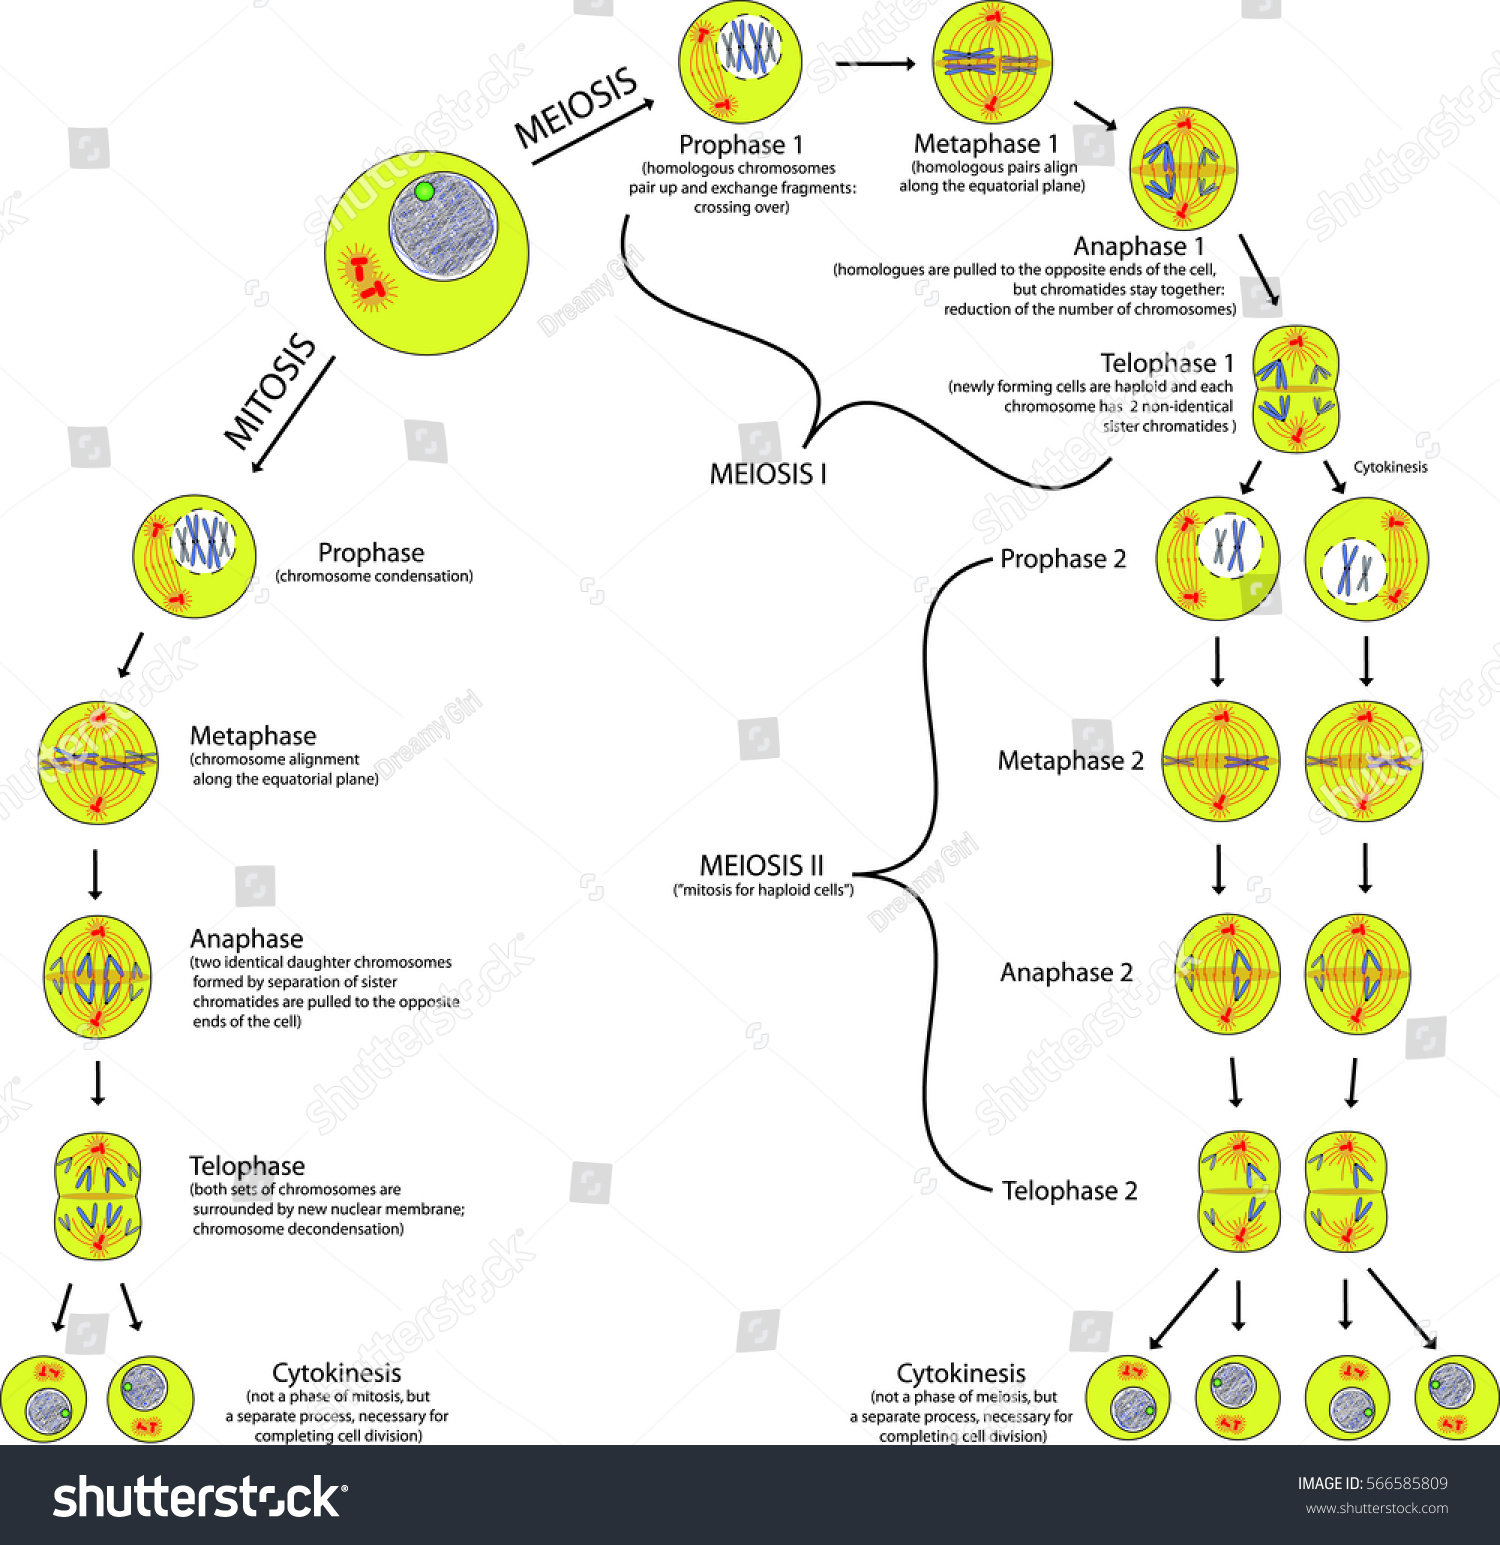 Mitosis meiosis comparison phases scheme explanation stock vector mitosis and meiosis comparison of phases scheme with explanation pooptronica